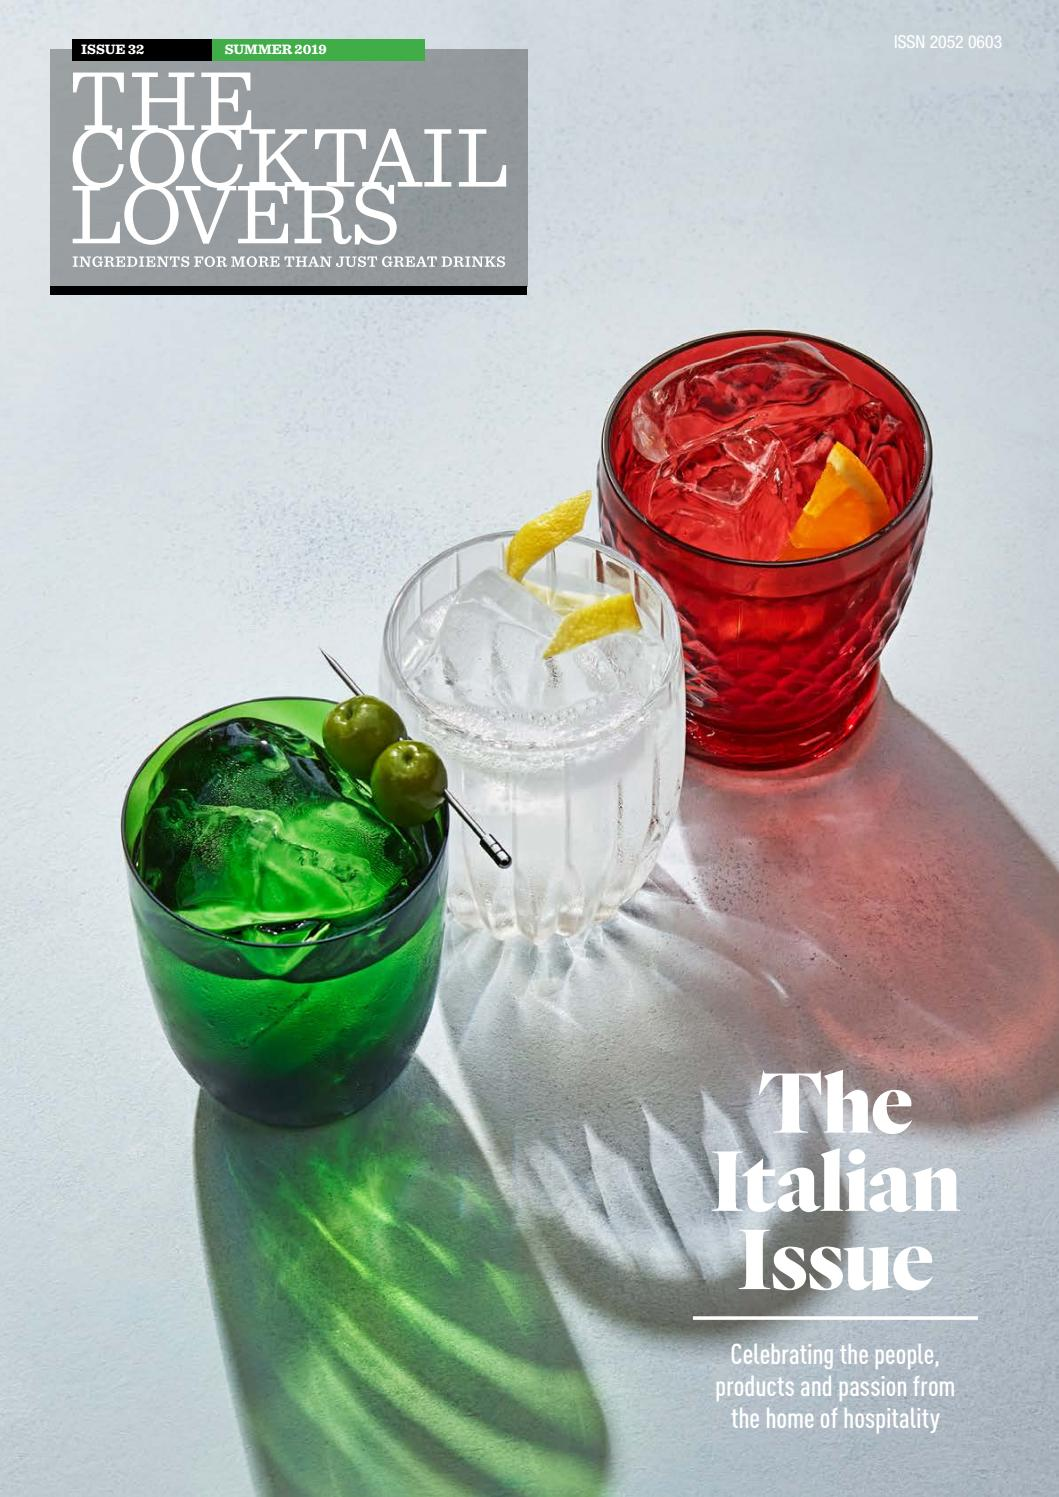 The Cocktail Lovers Magazine Issue 32 Summer 2019 By The Cocktail Lovers Issuu